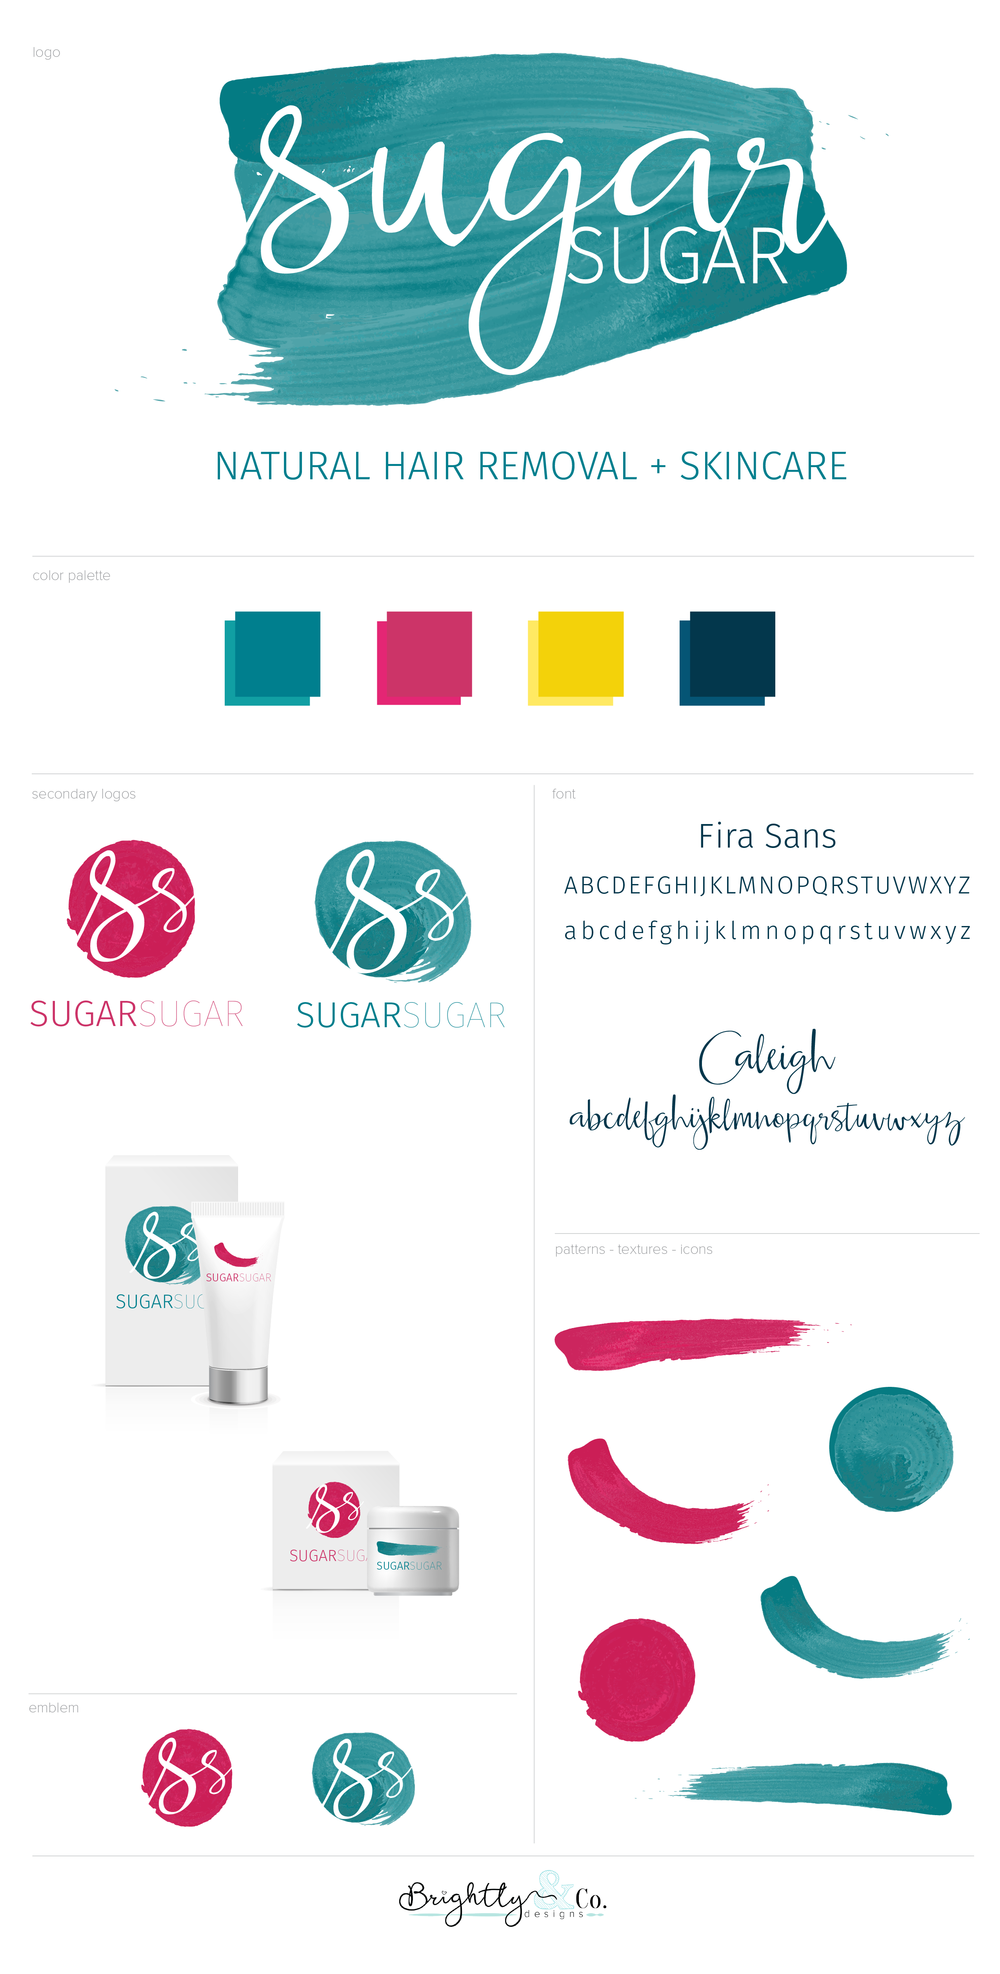 Brightly & Co. - Sugar Sugar PDX Brand Style Guide